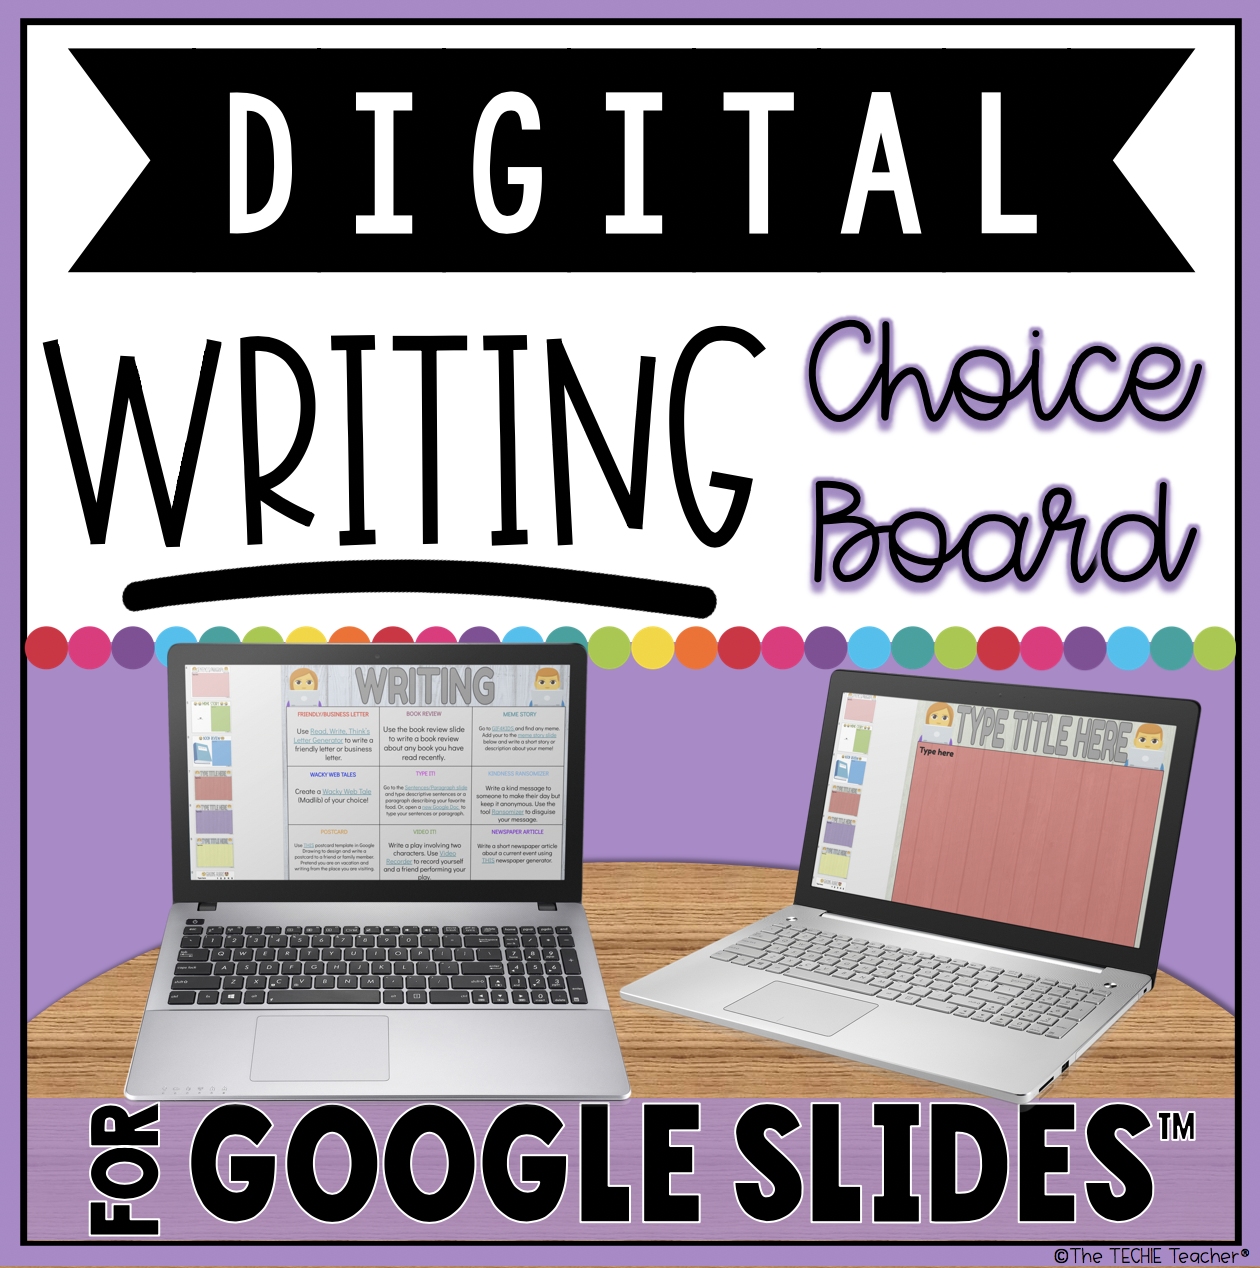 Helpful Ideas for 1:1 Chromebook Classrooms | The Techie